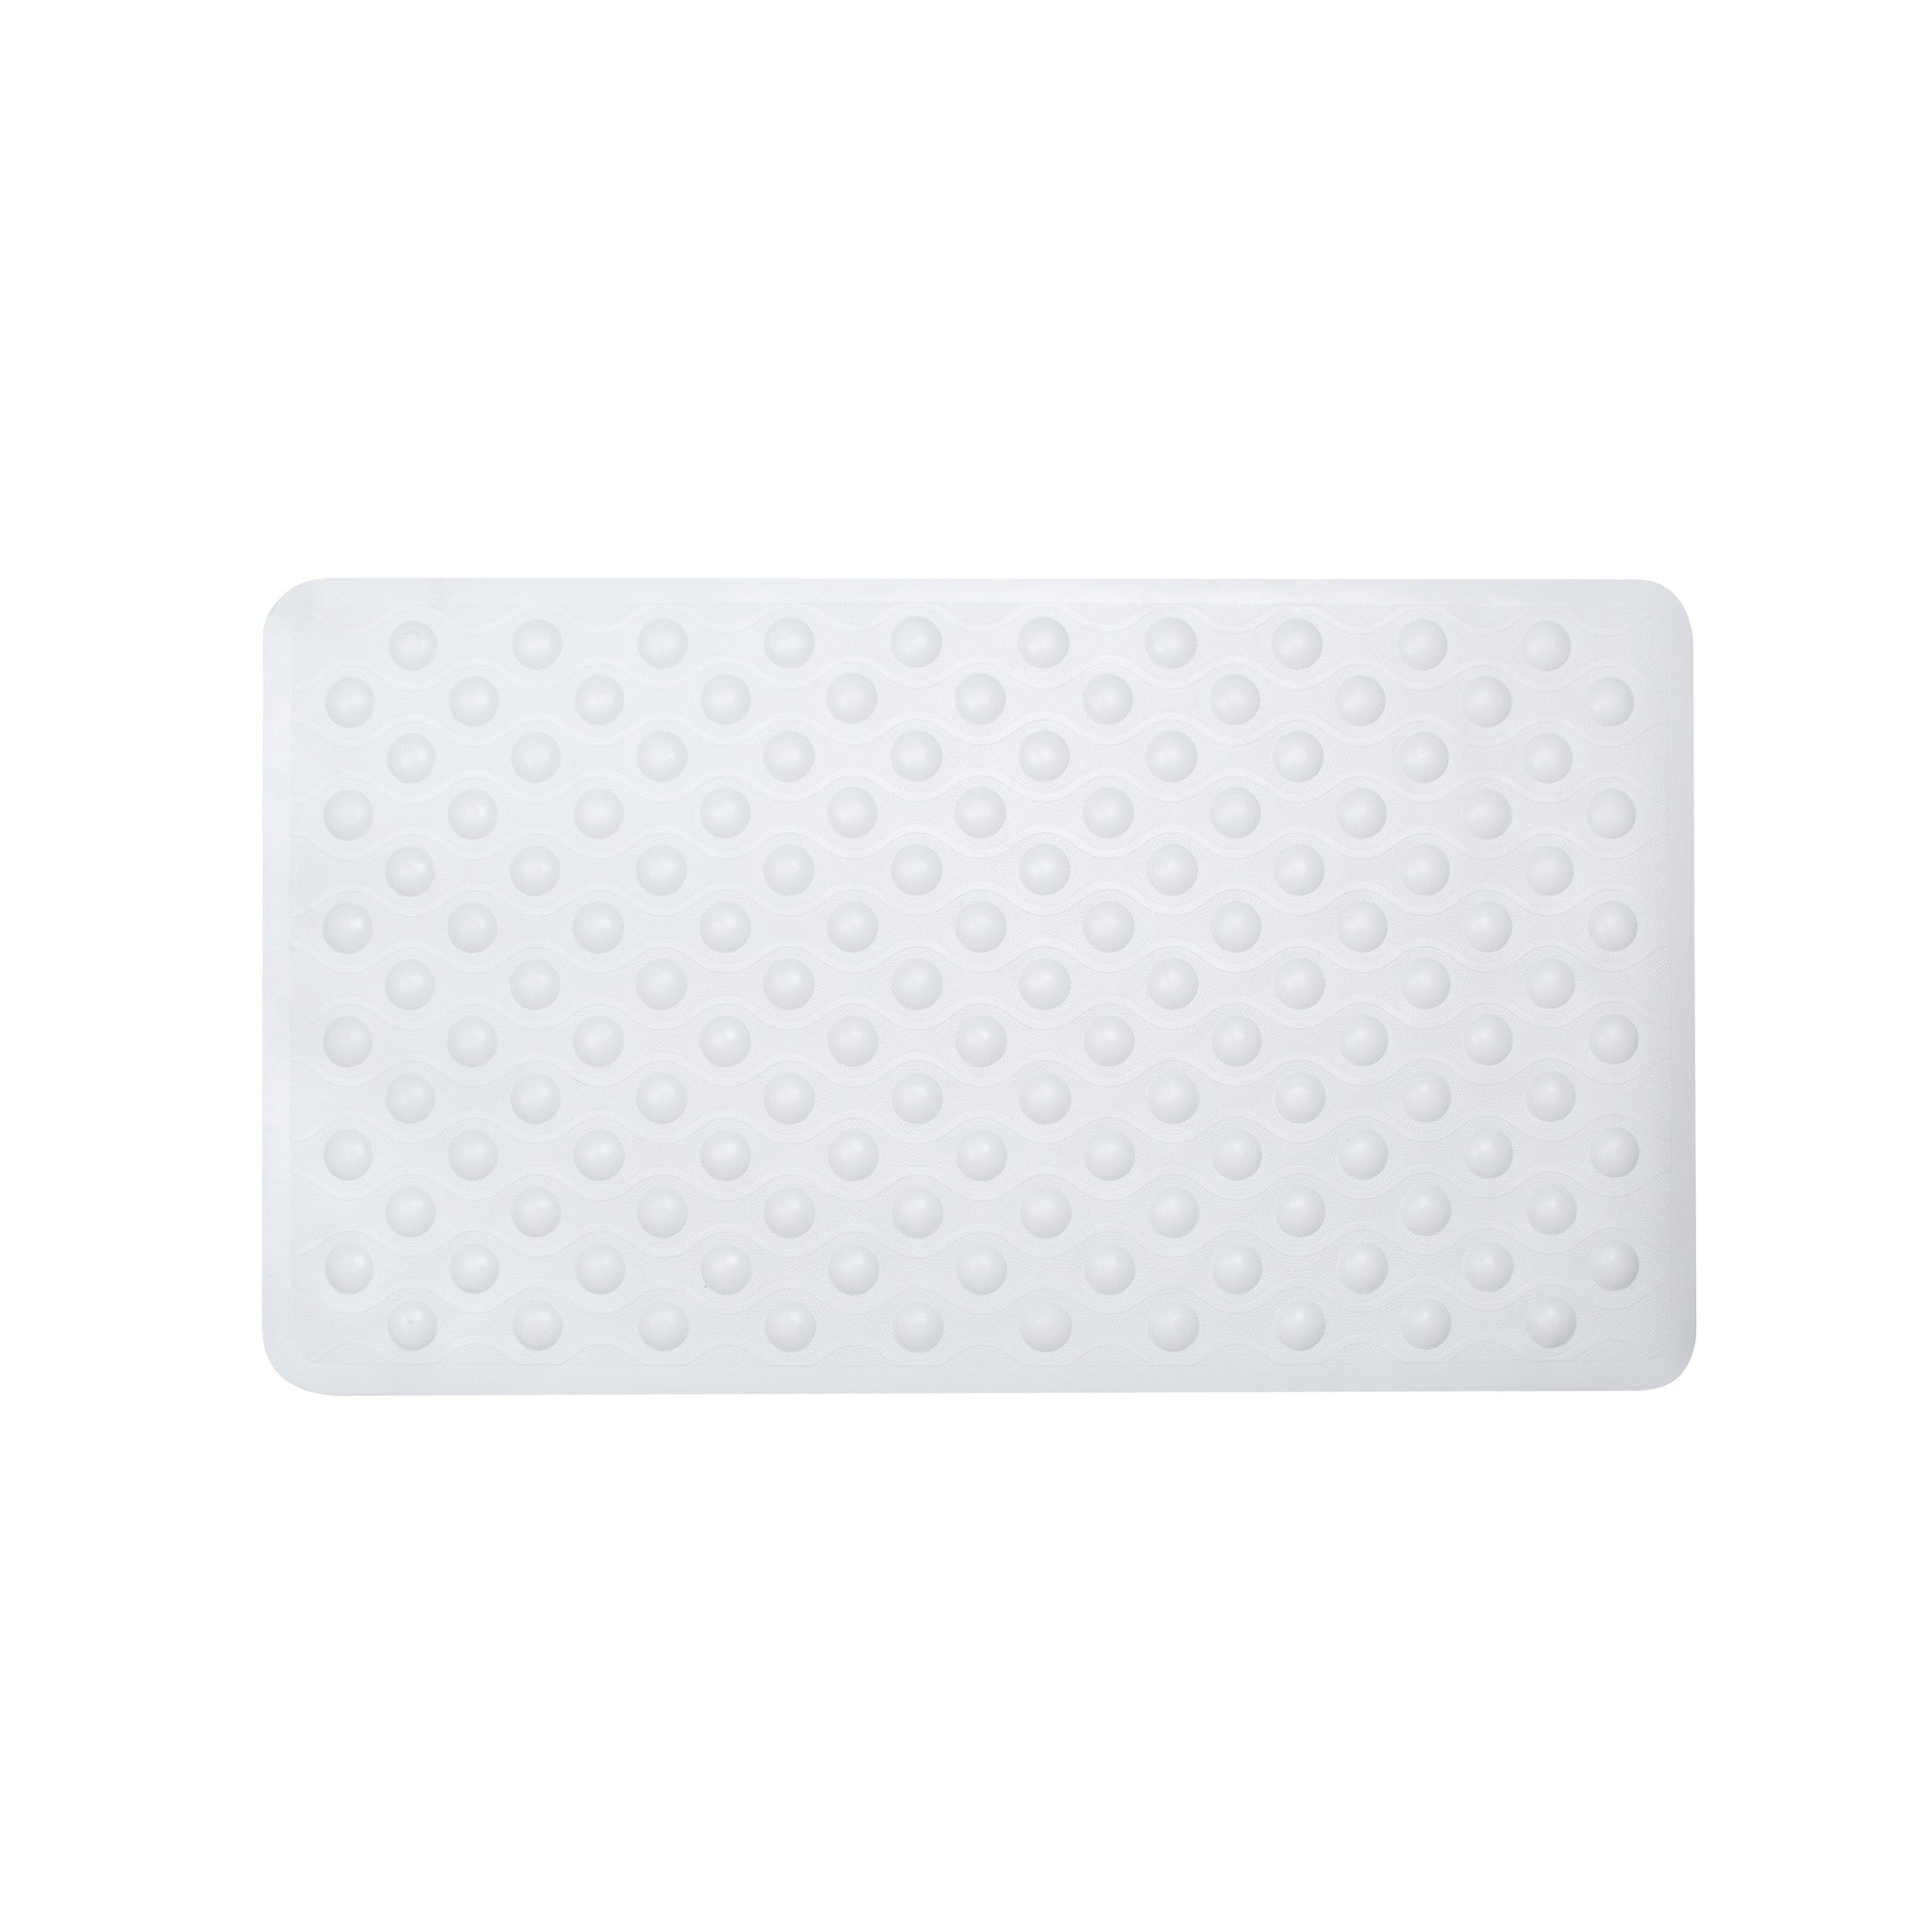 our mats any softer construction mat than shag t and jersey this bath white it doesn get pin